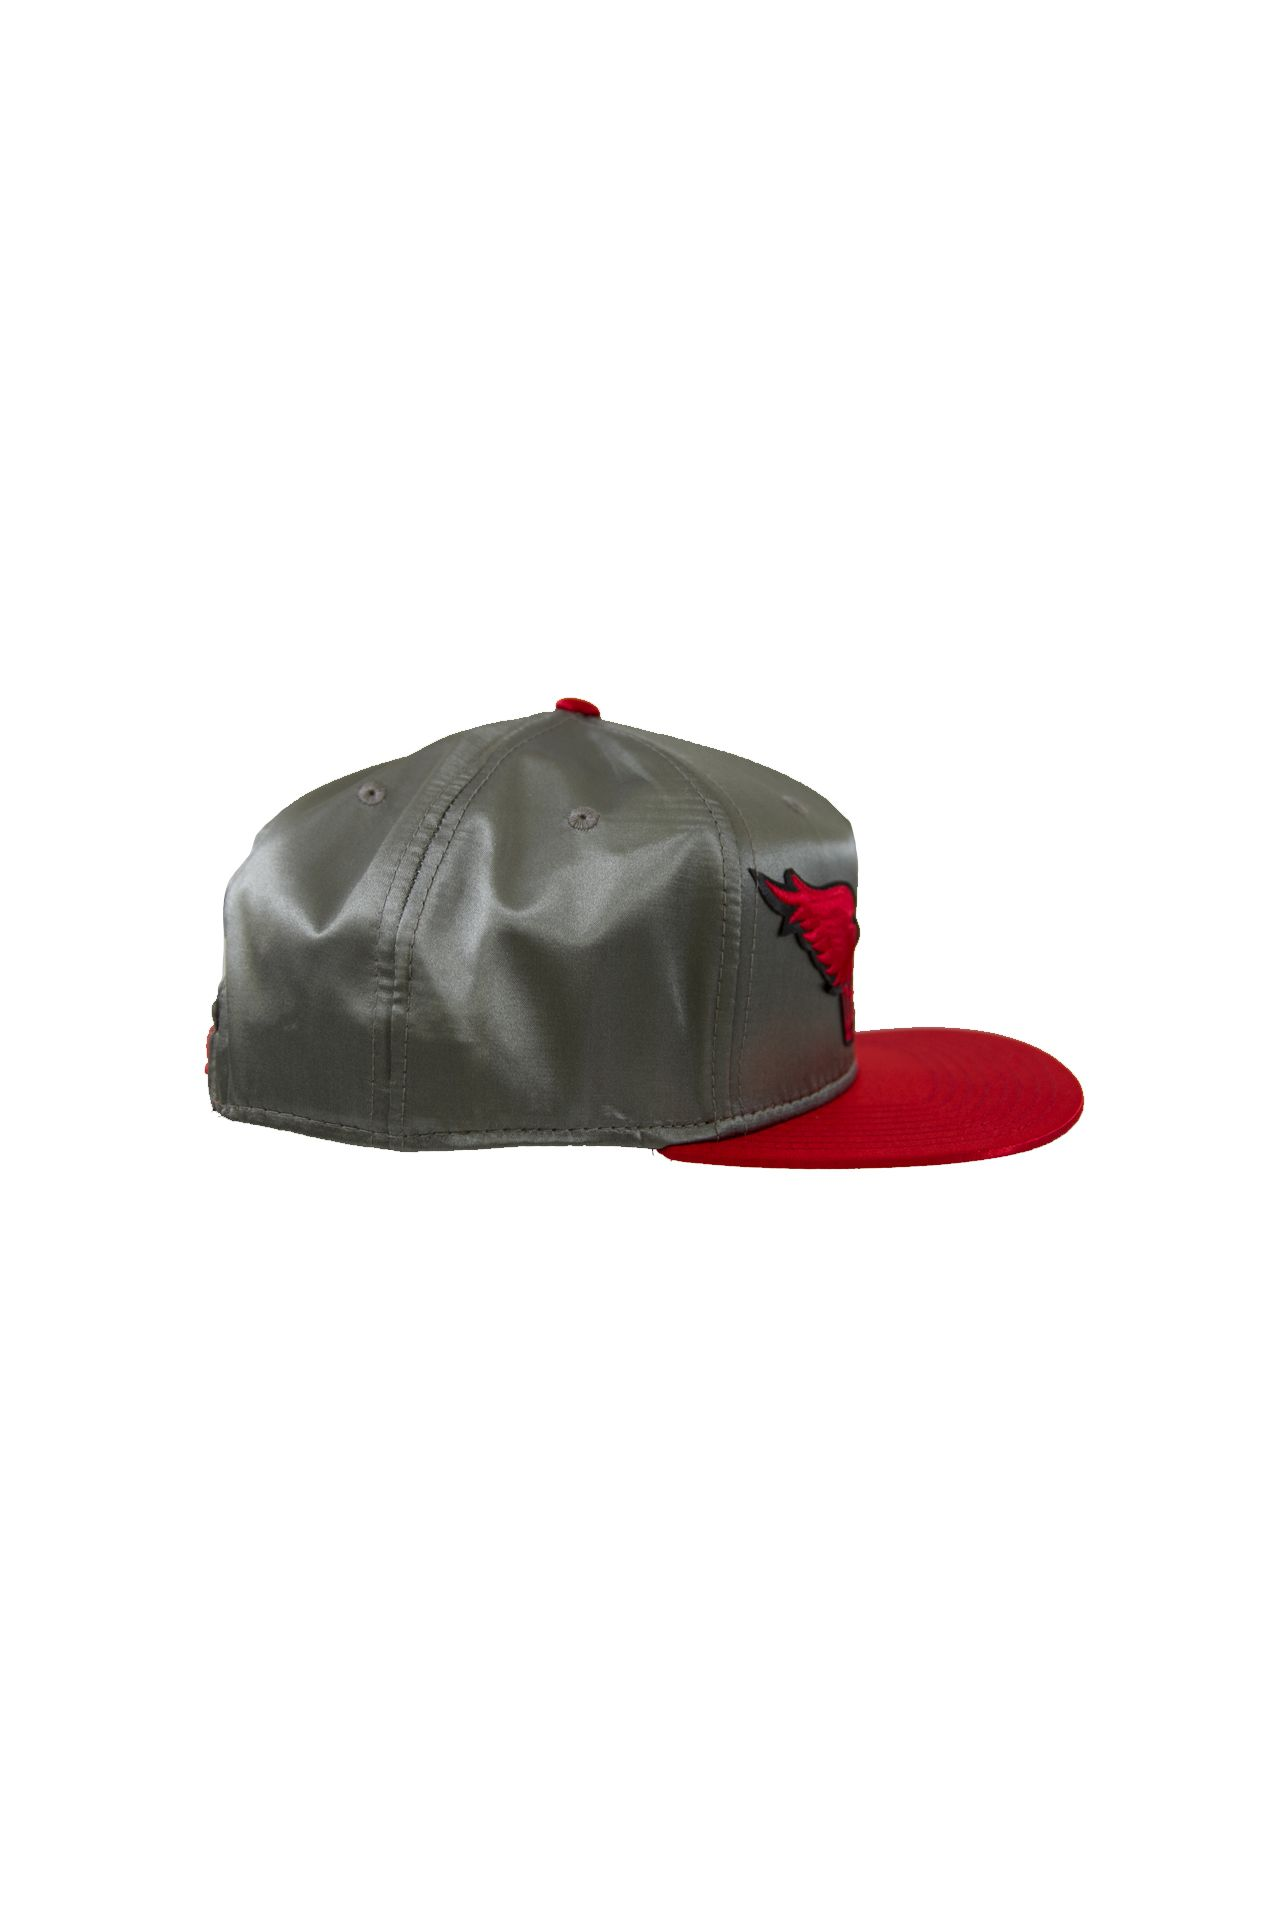 SILVER AND RED SATIN CAP